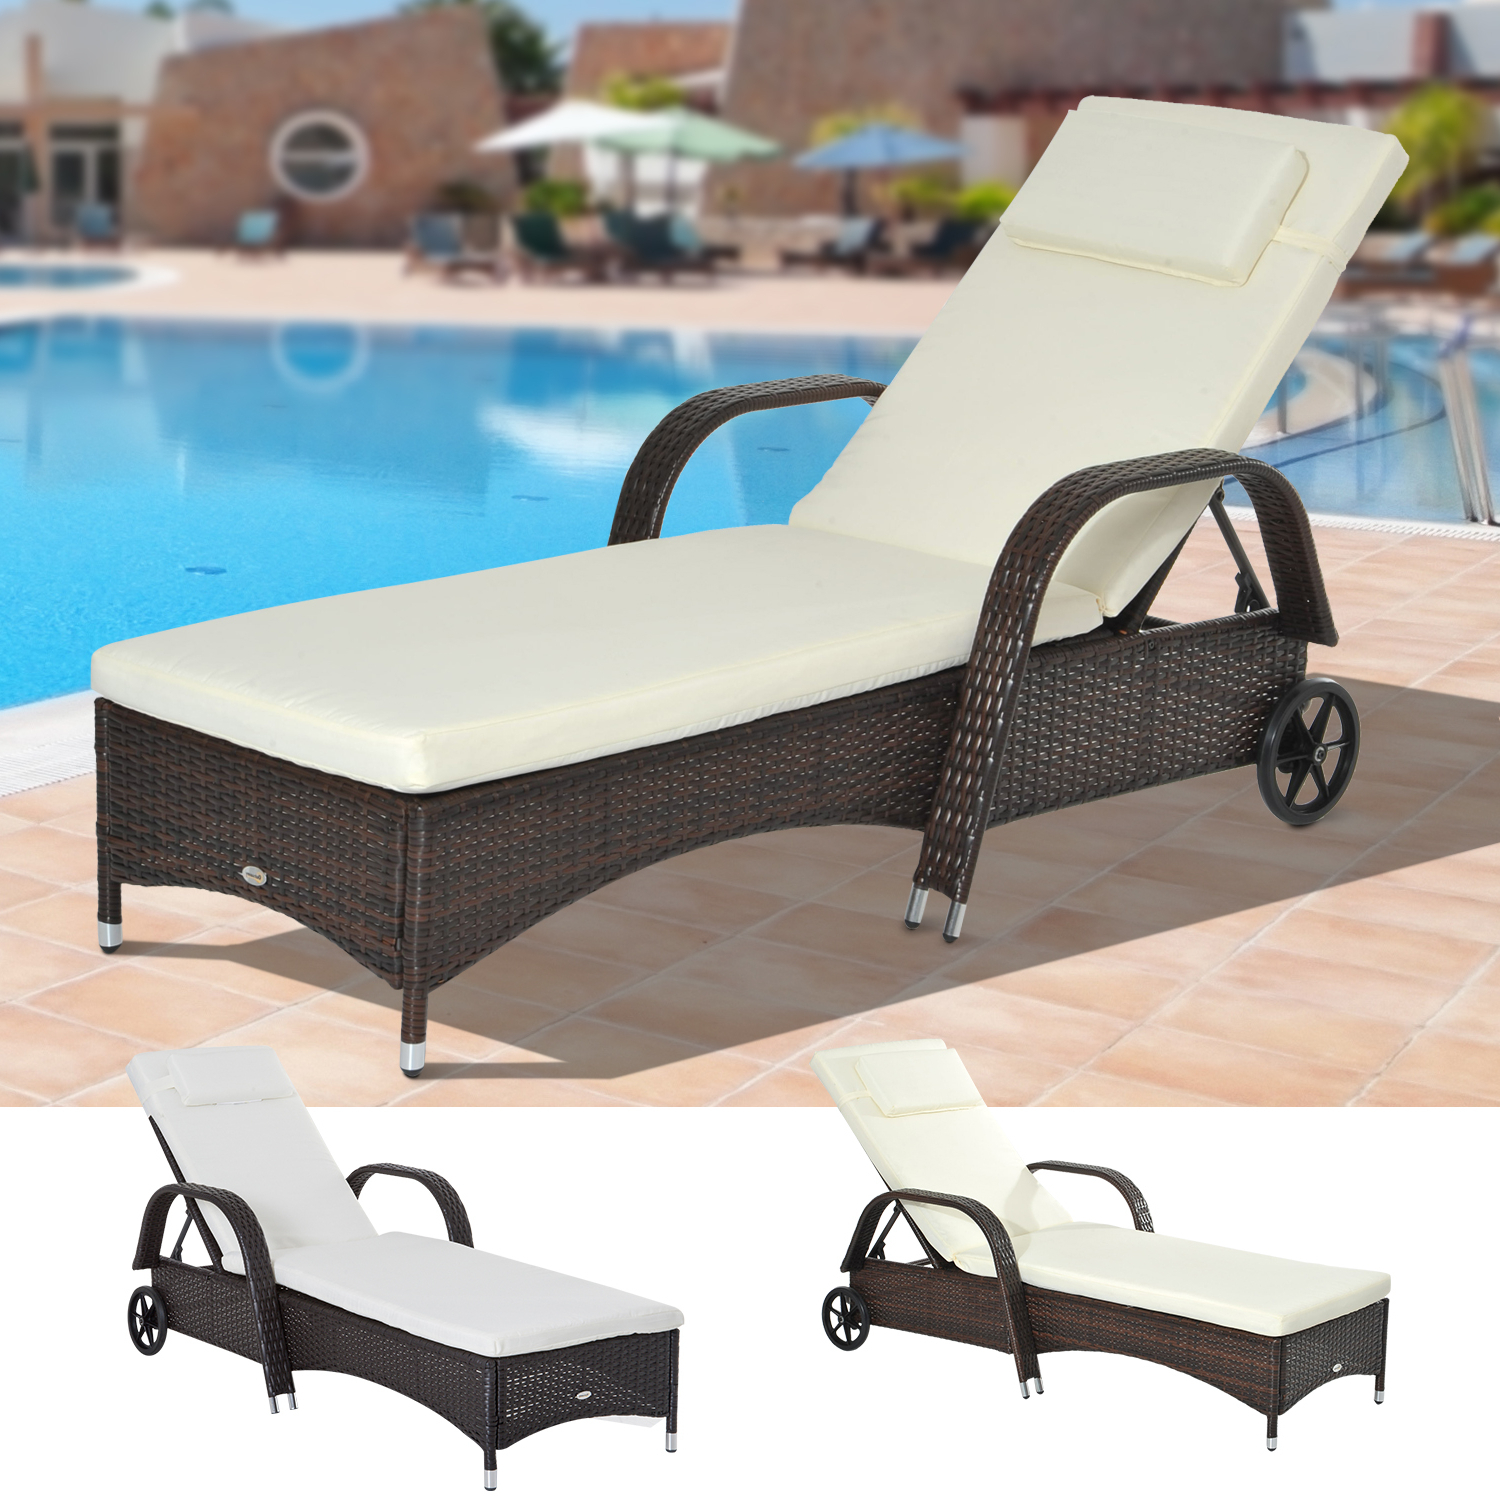 Plastic Chaise Lounges W/ Wheels With Favorite Details About Outdoor Rattan Wicker Chaise Lounge Beach Poolside Adjustable  Sofa Chair W/wheel (Gallery 17 of 25)